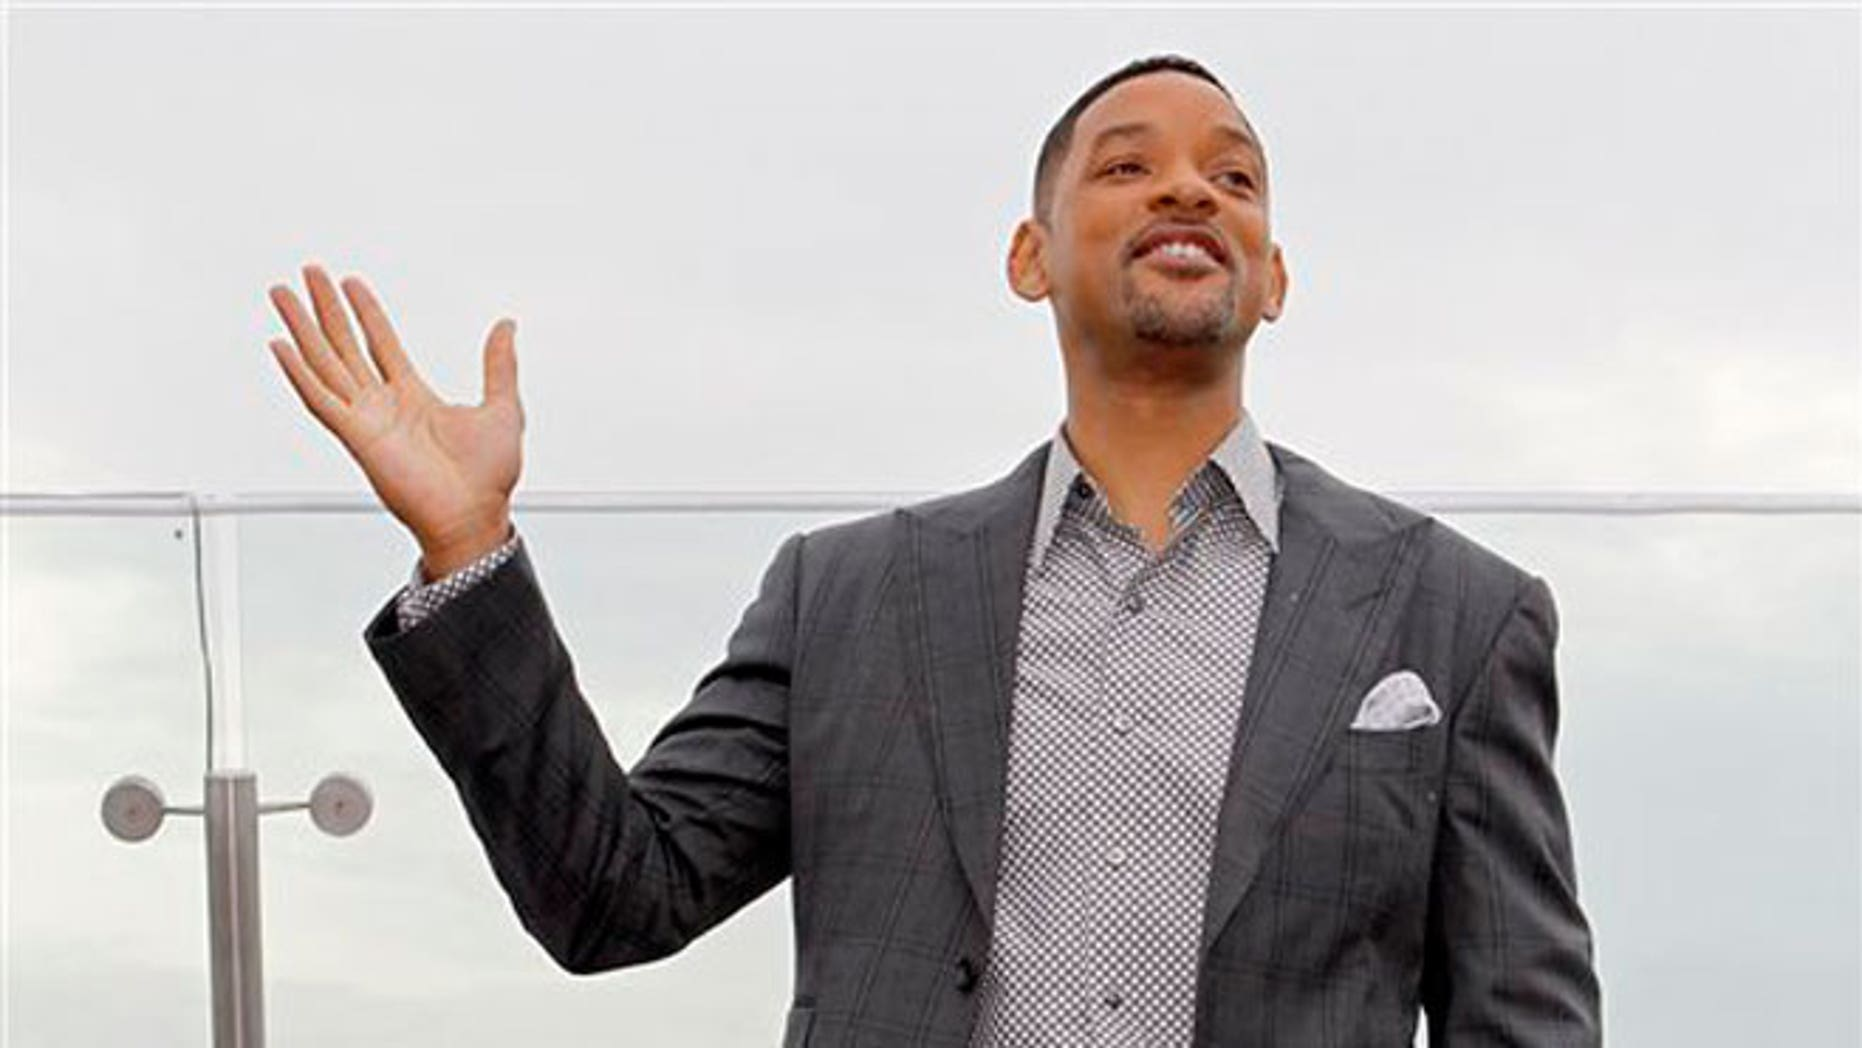 """May 18: Will Smith poses for photographers at a hotel during a photocall for his film """"Men in Black 3"""" in Moscow, Russia."""